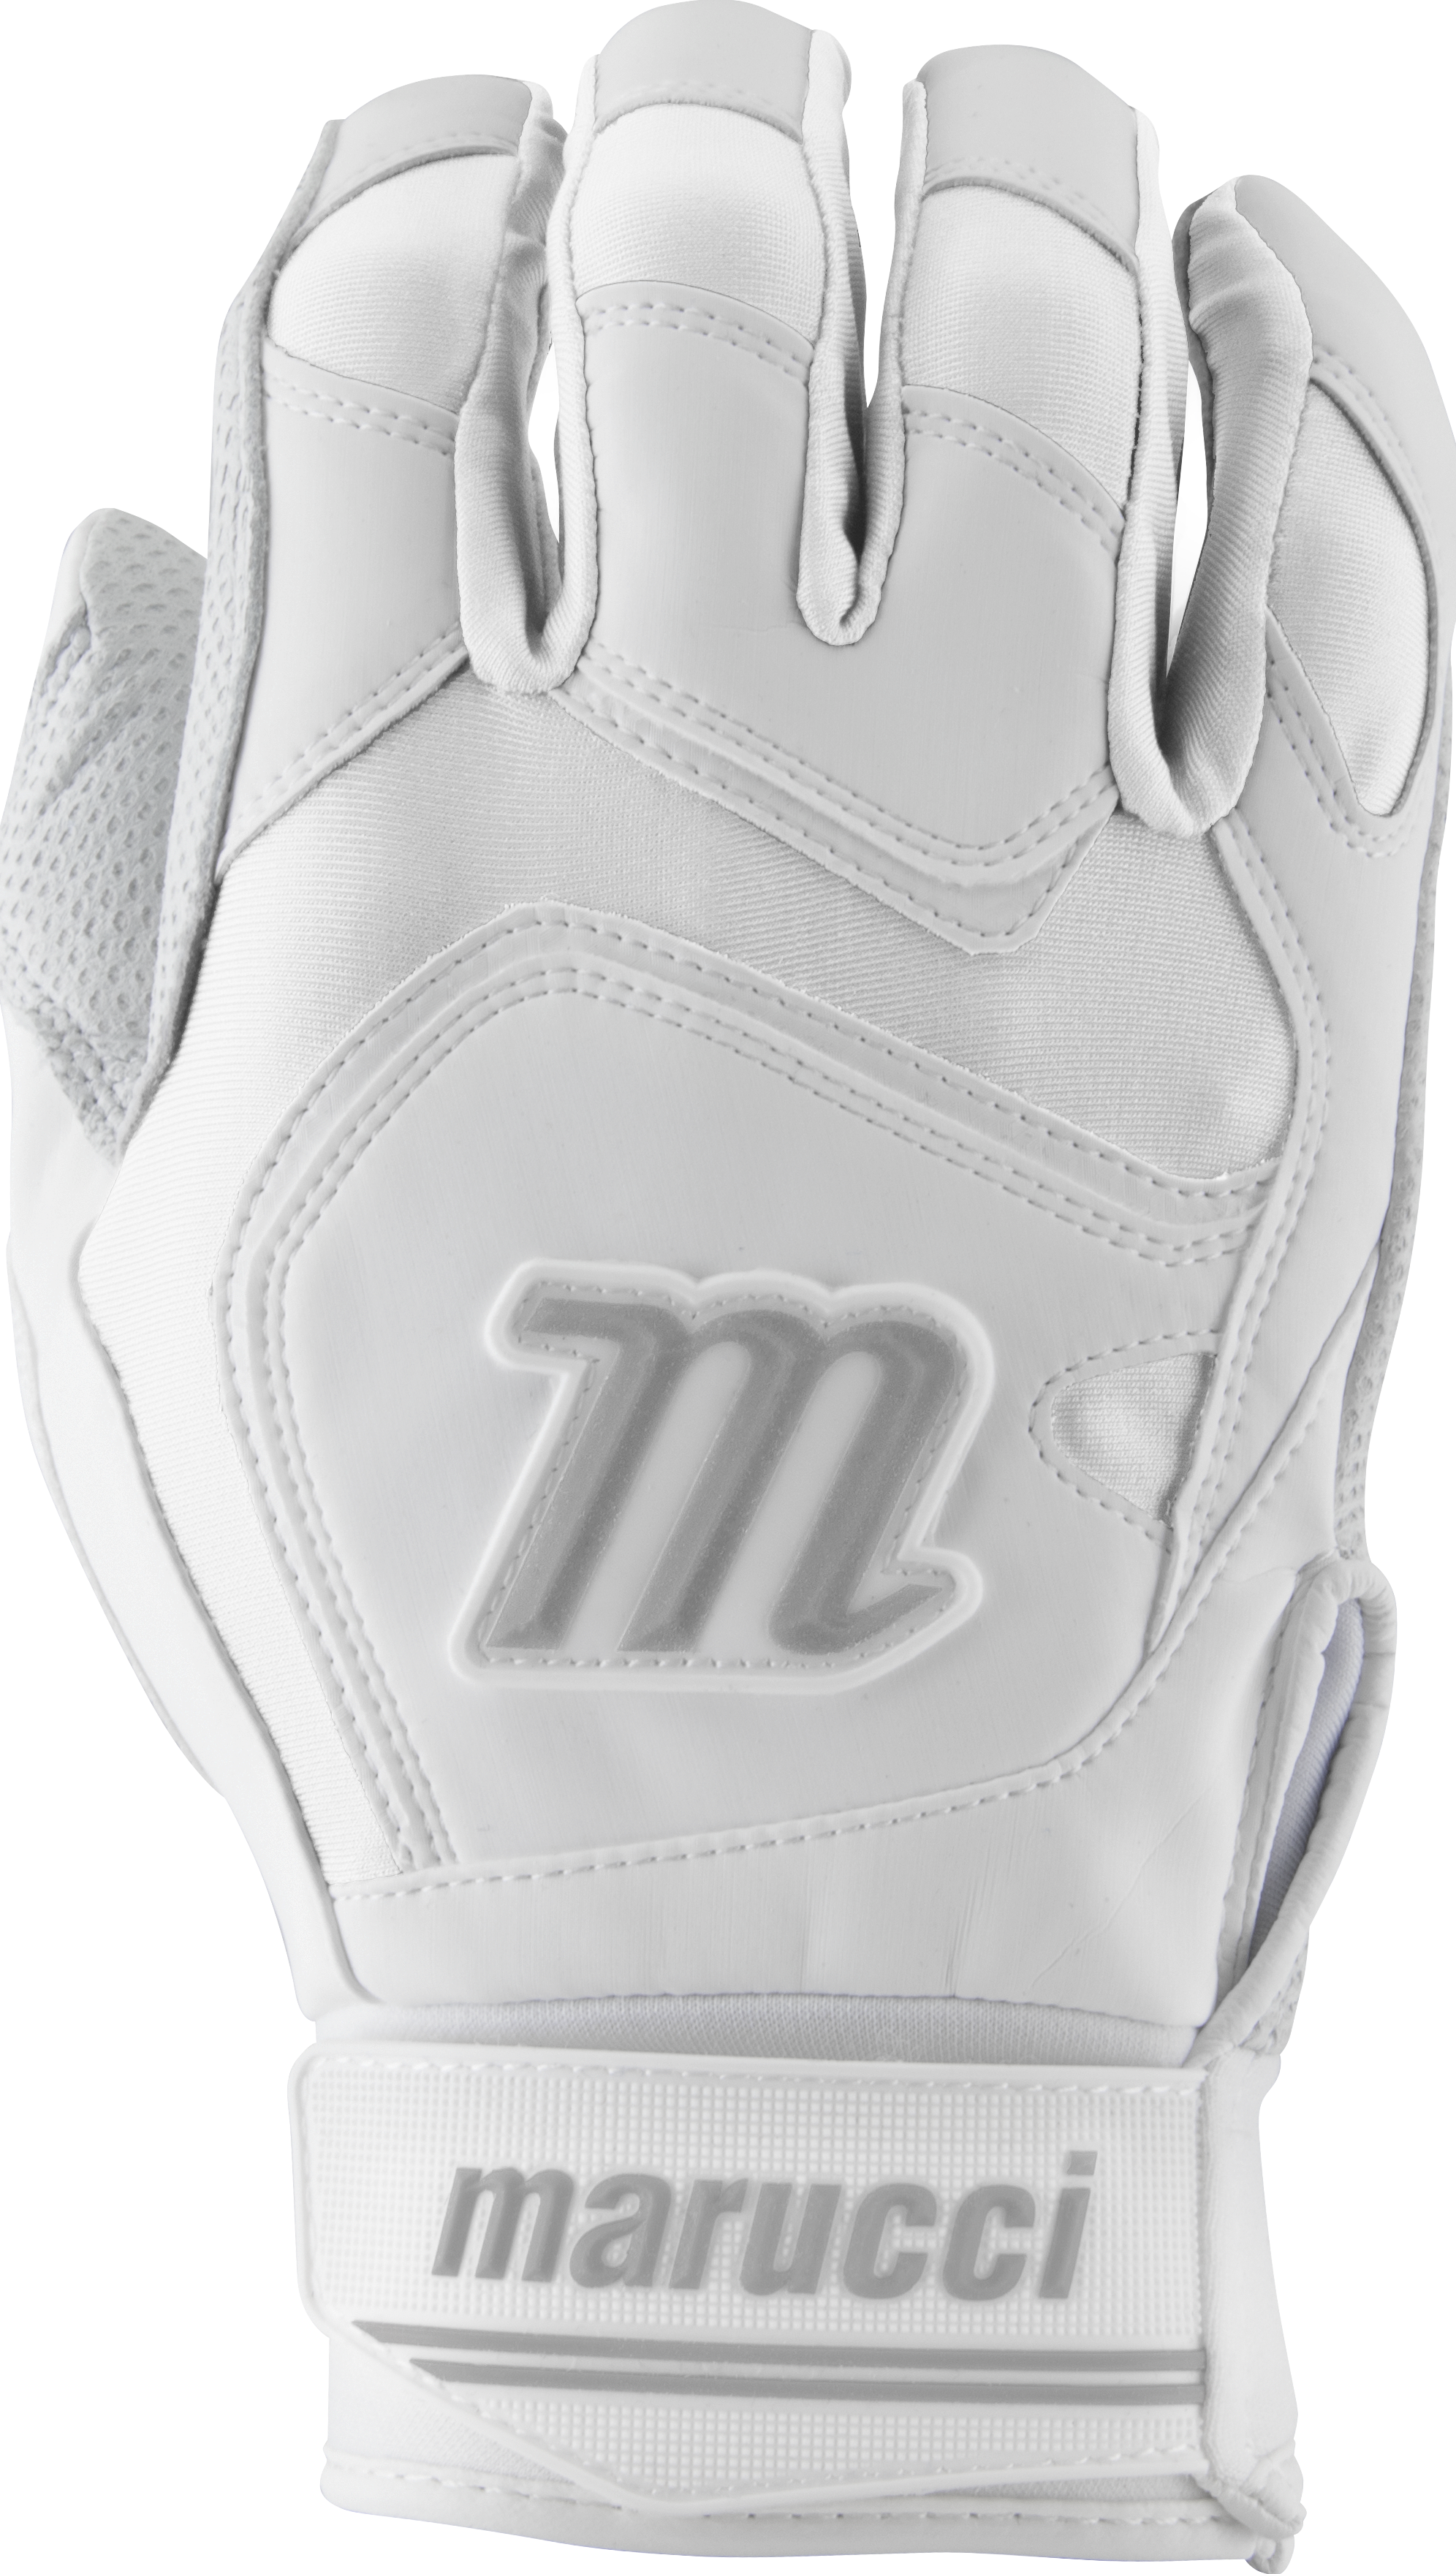 marucci-signature-batting-gloves-mbgsgn2-1-pair-white-white-adult-small MBGSGN2-WW-AS  849817096857 2019 Model MBGSGN2 Consistency And Craftsmanship Commitment To Quality And Understanding